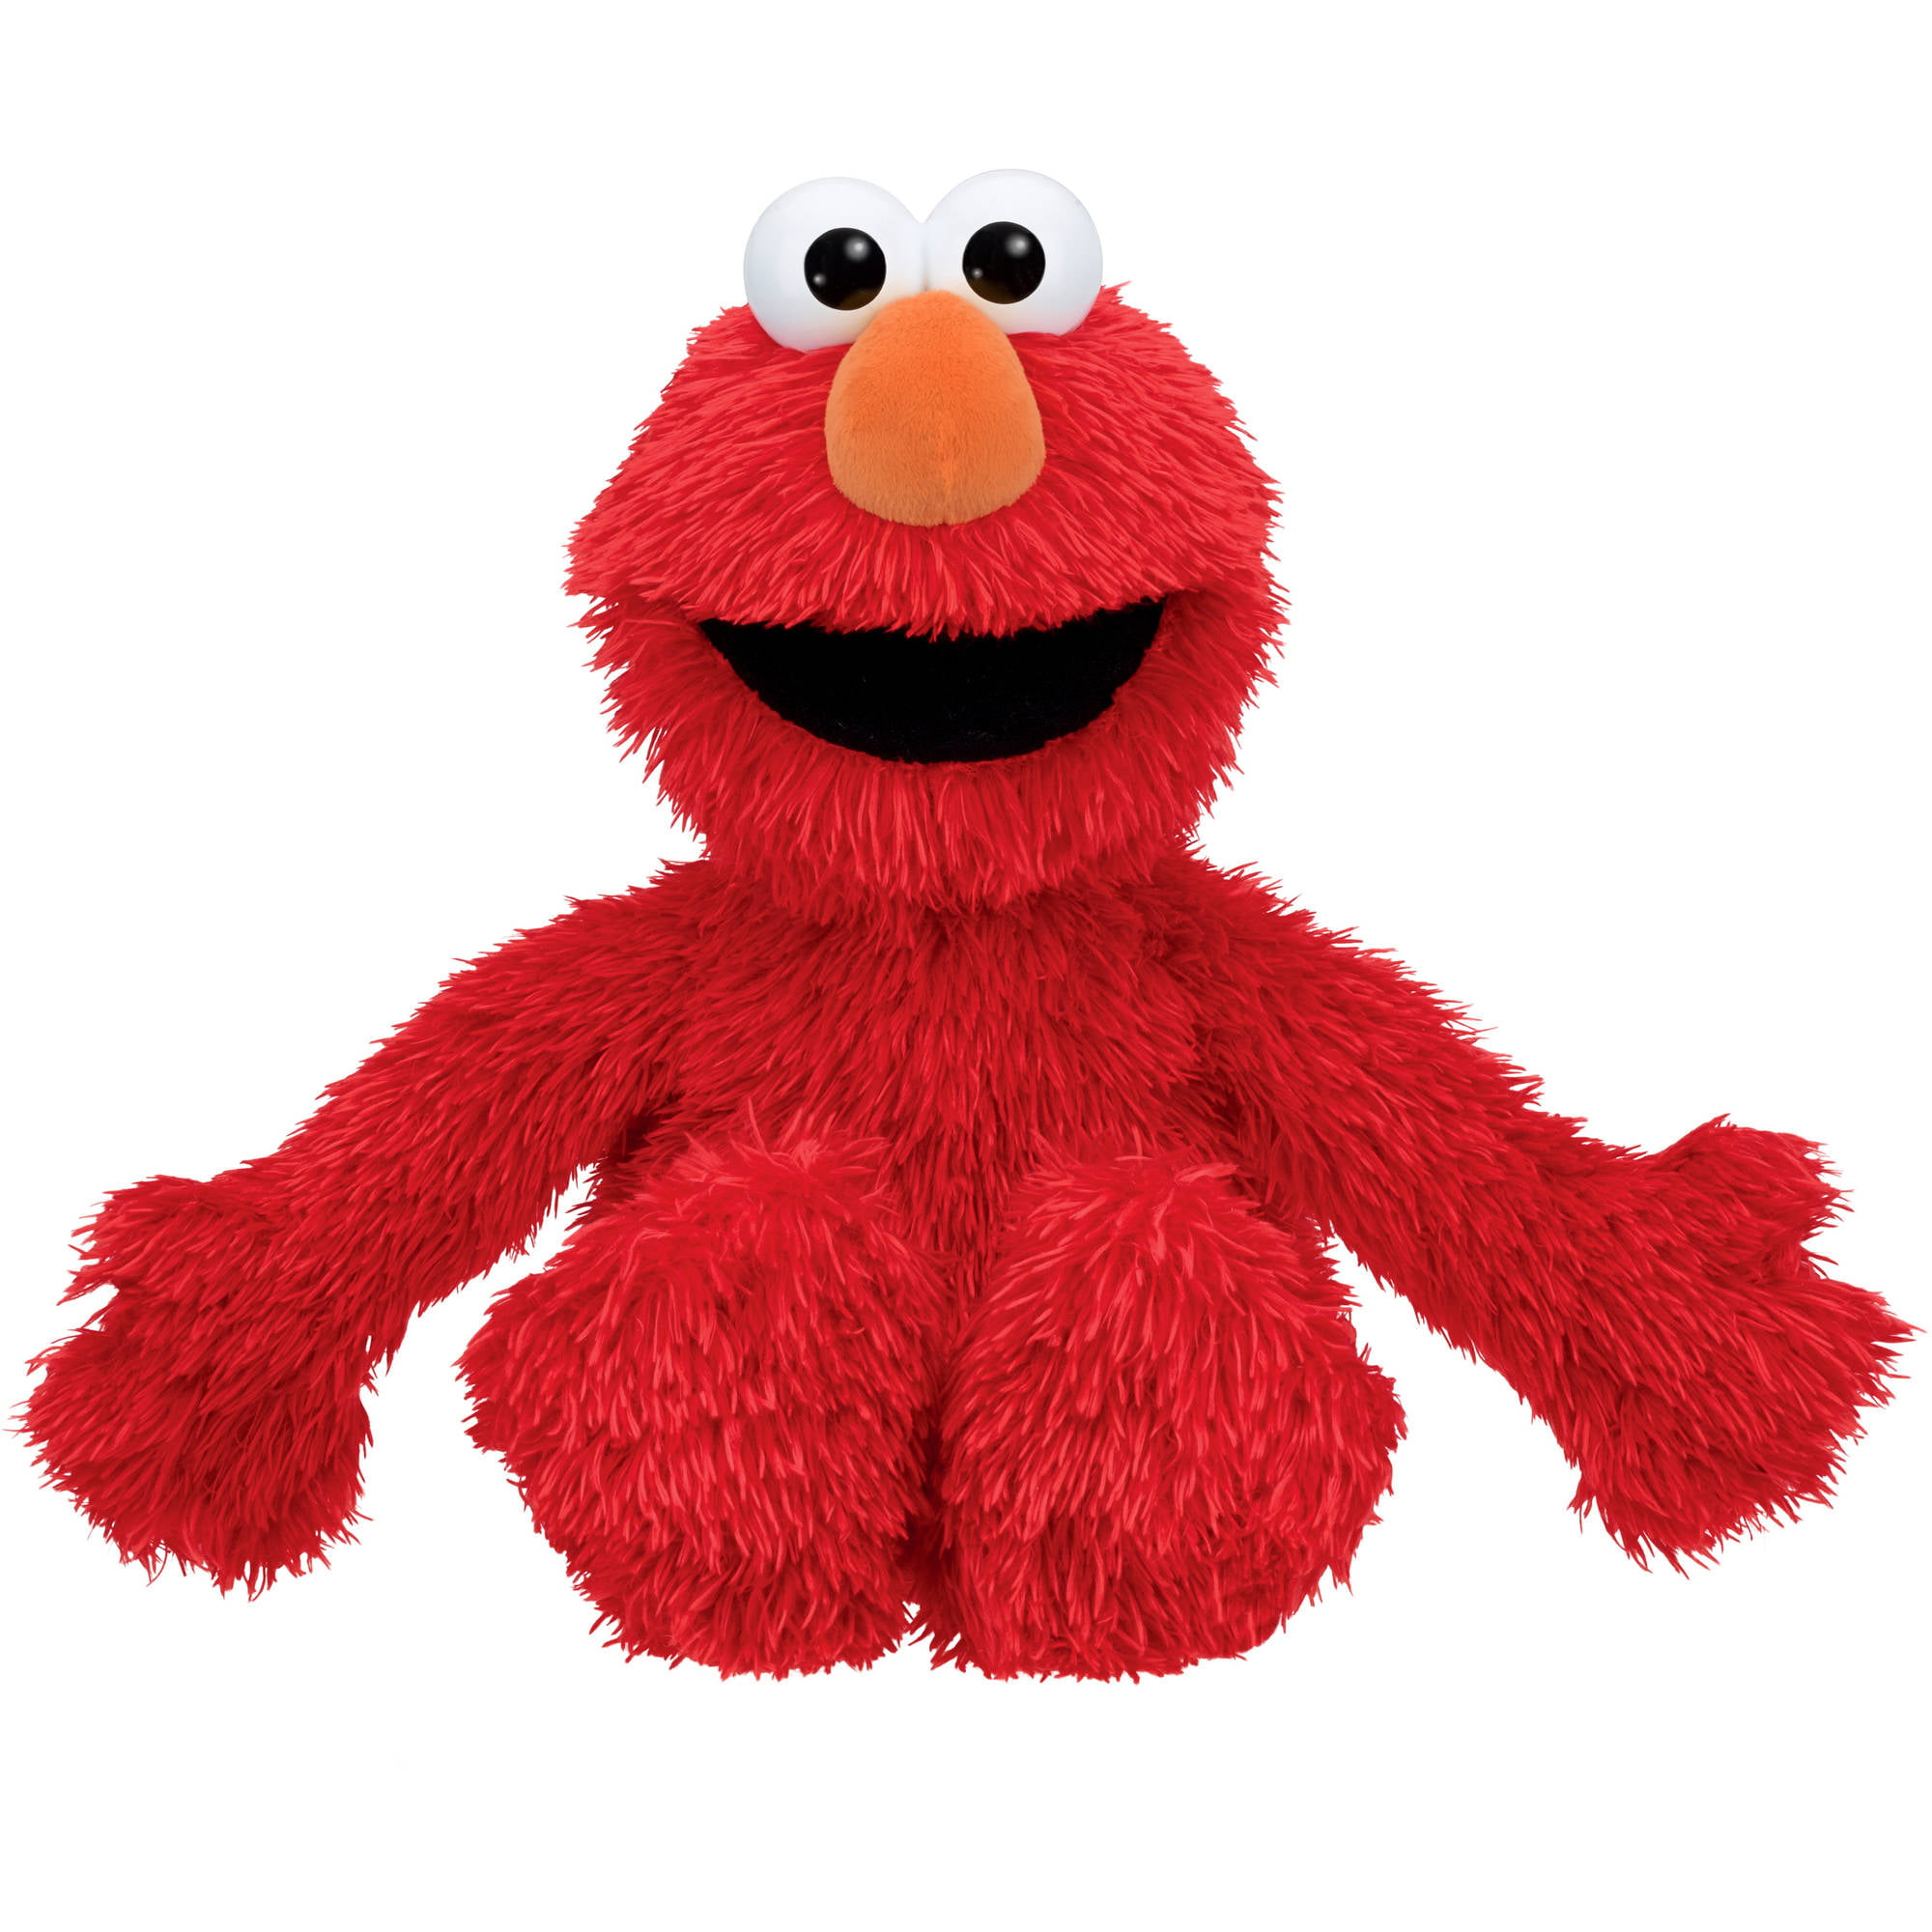 Sesame Street Love2Learn Elmo by Sesame Street